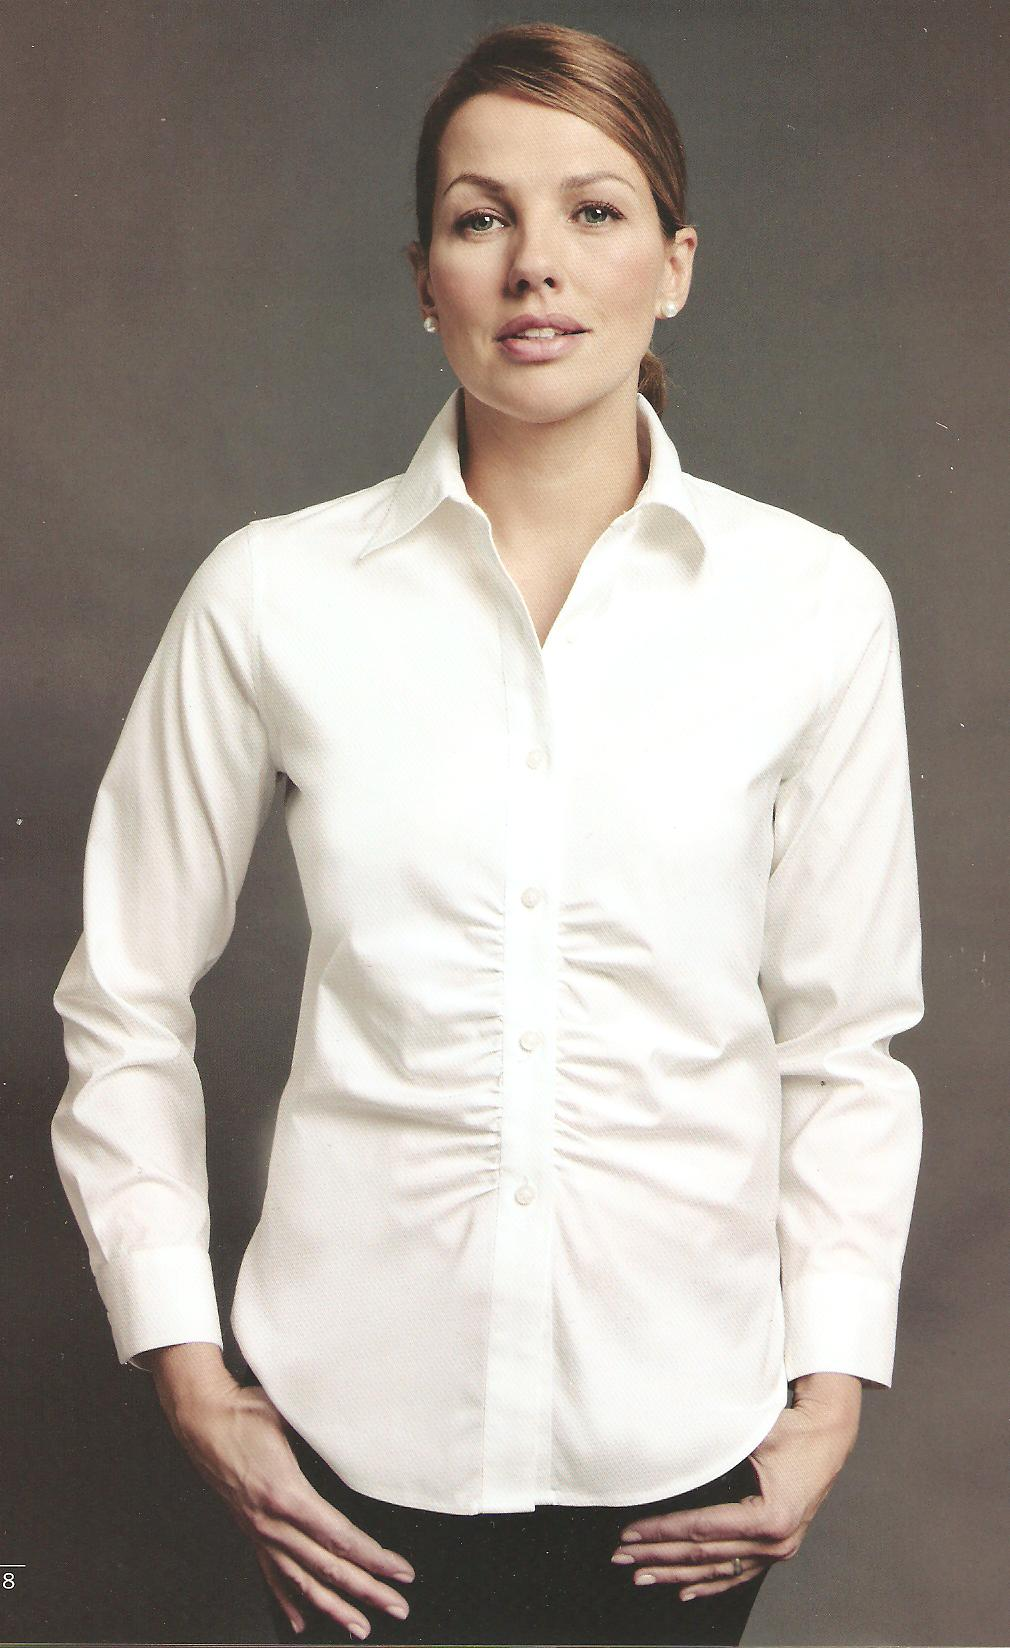 Find great deals on eBay for white blouse. Shop with confidence.